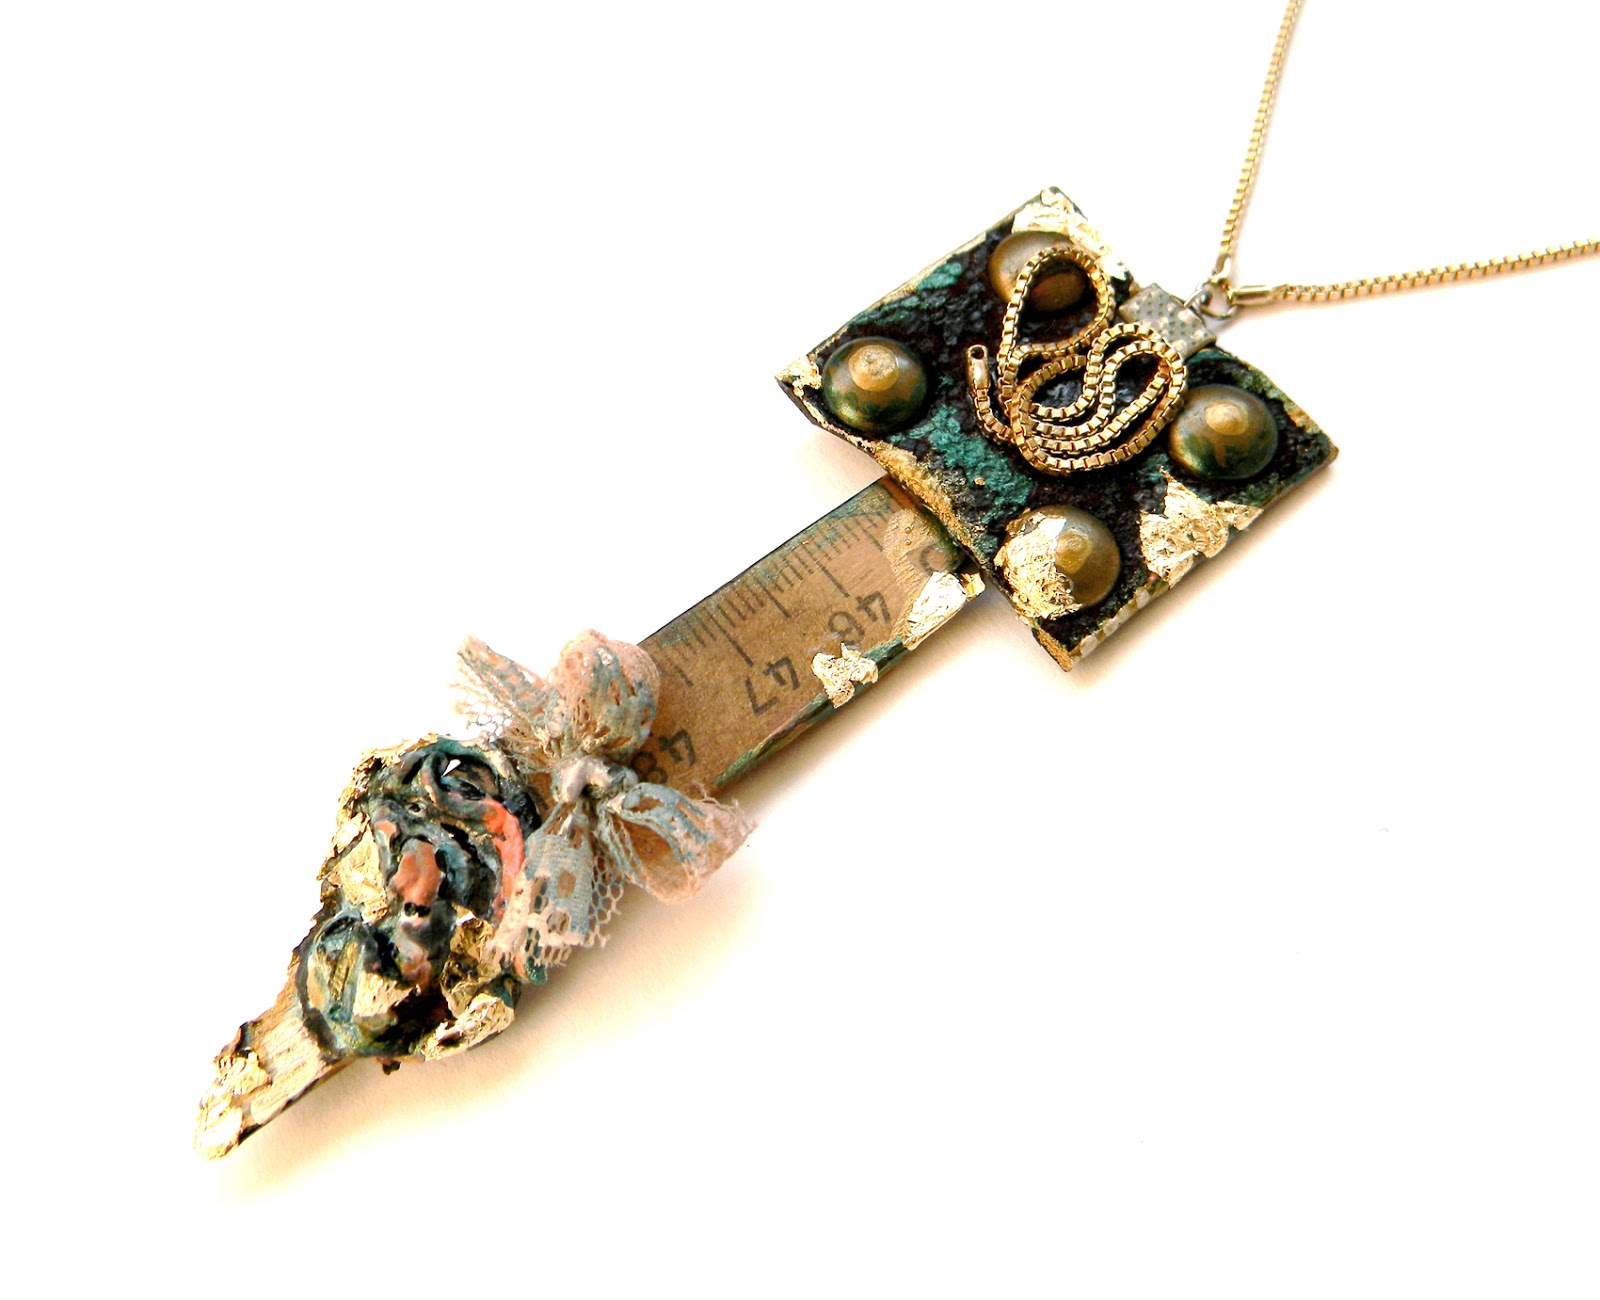 Handmade Necklace steampunk Industrial Chic Art Jewelry